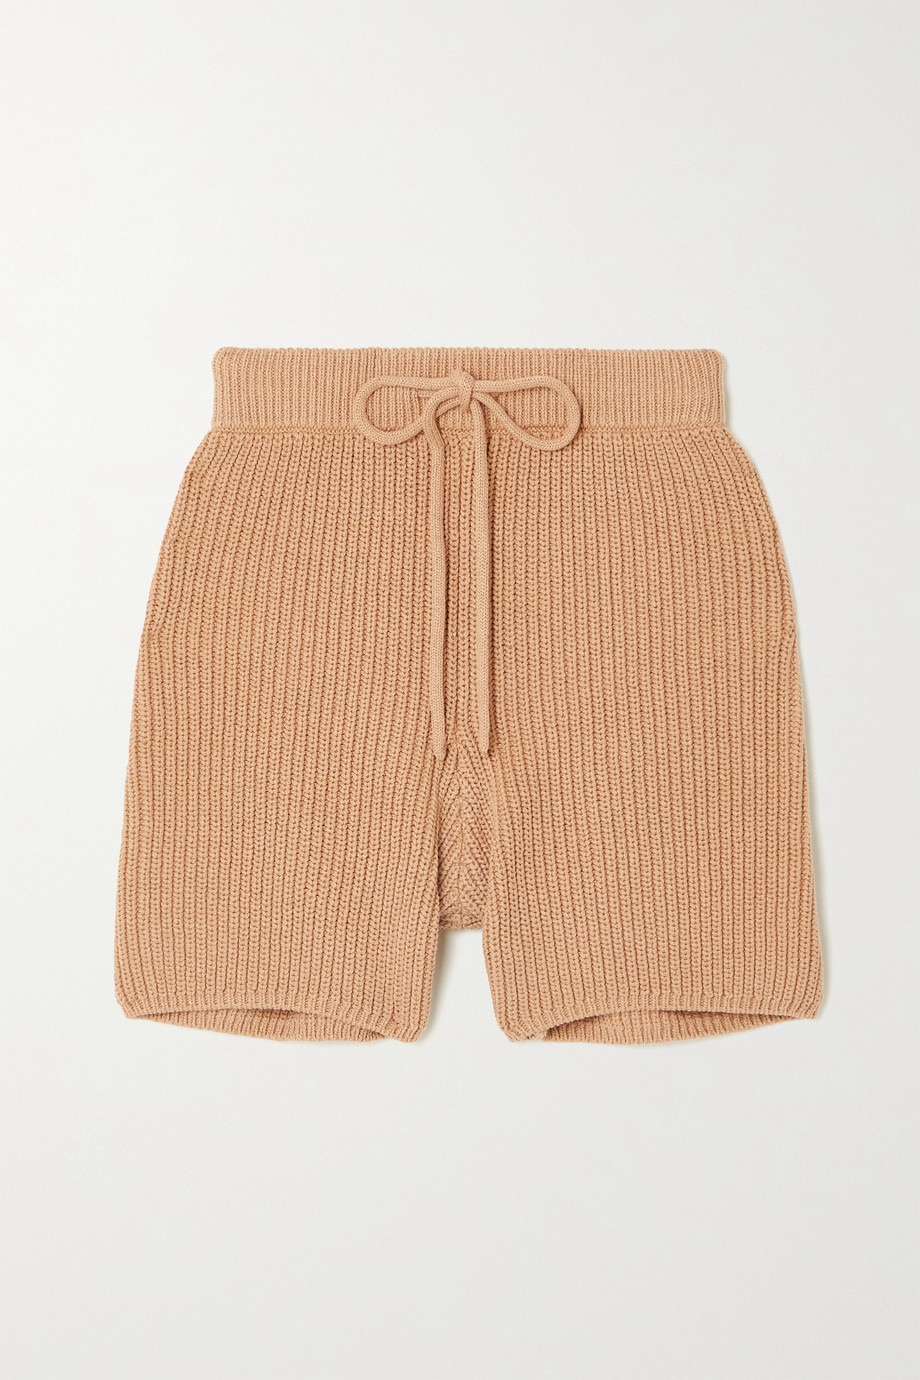 Reformation Sanzo ribbed cotton shorts